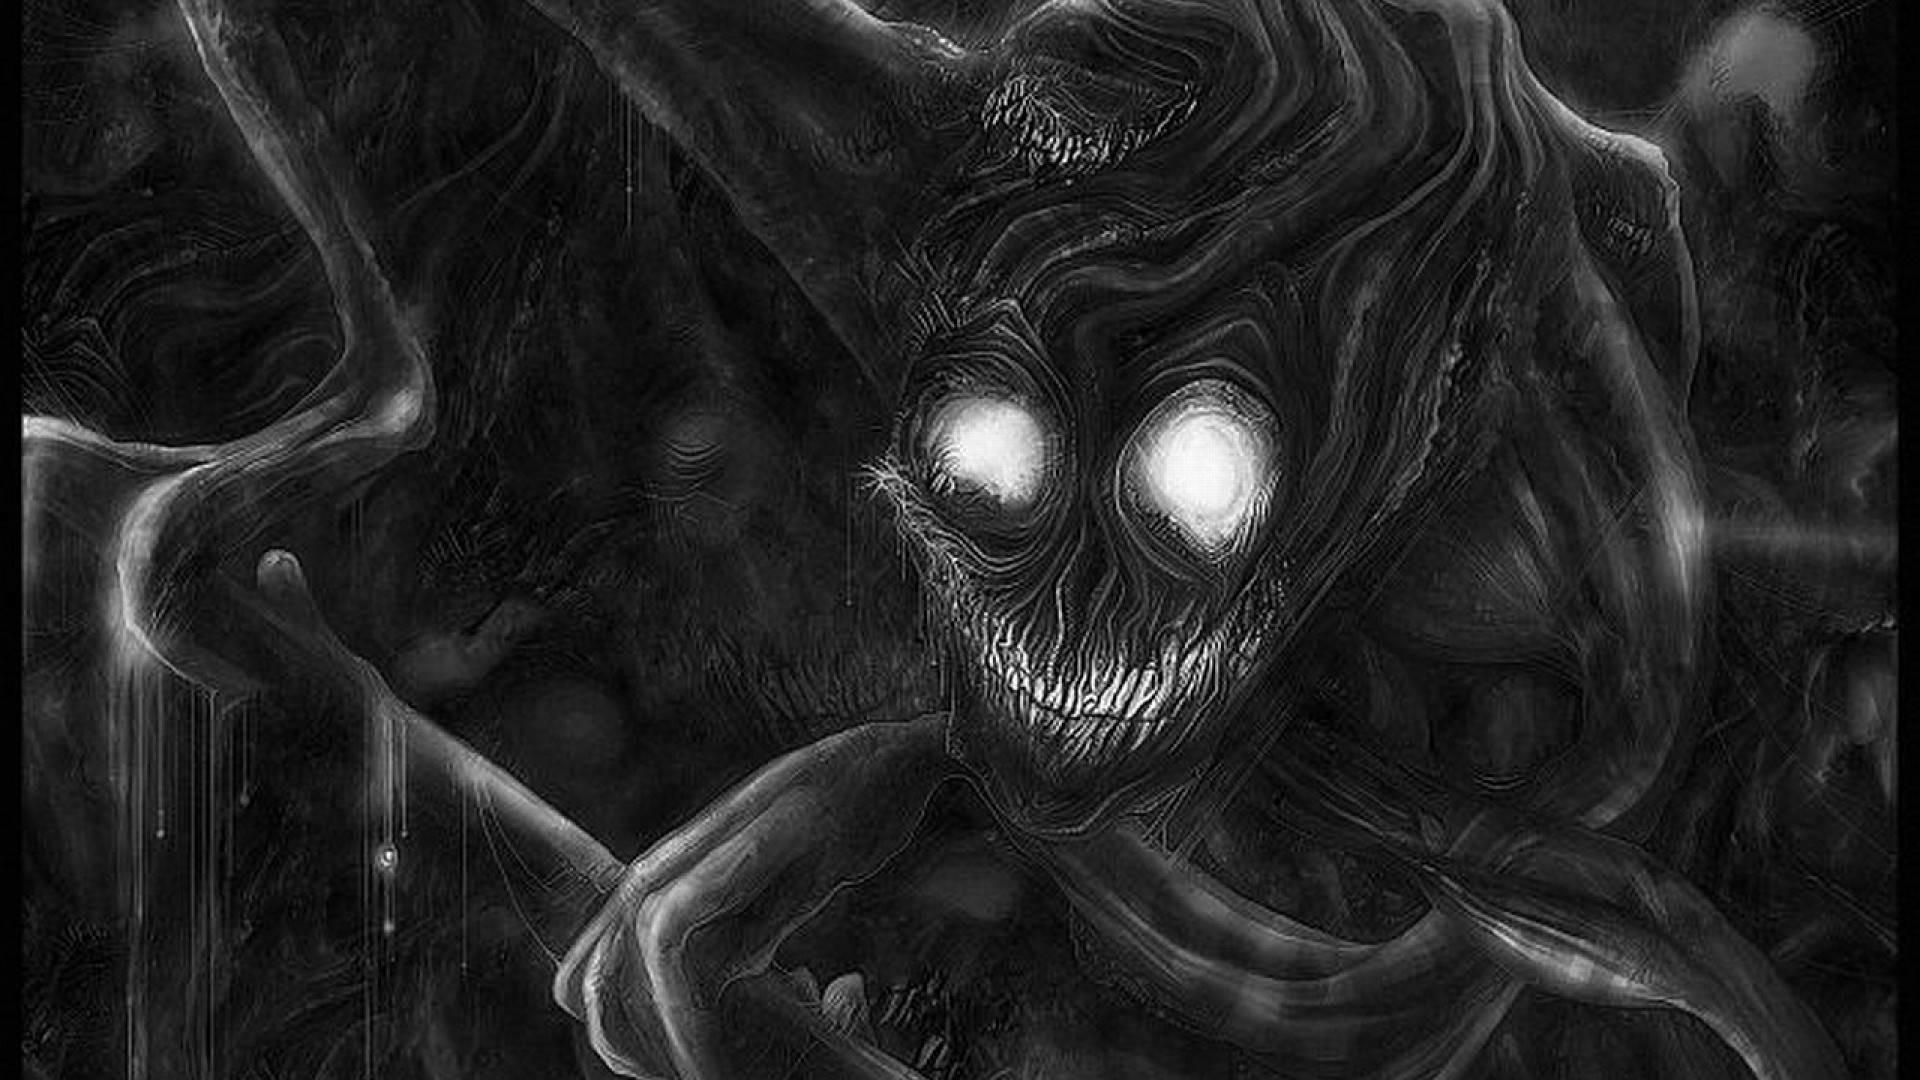 New Scary WallPapers Dark Horror HD Backgrounds The Art 1920×1080 Scary  Wallpaper (48